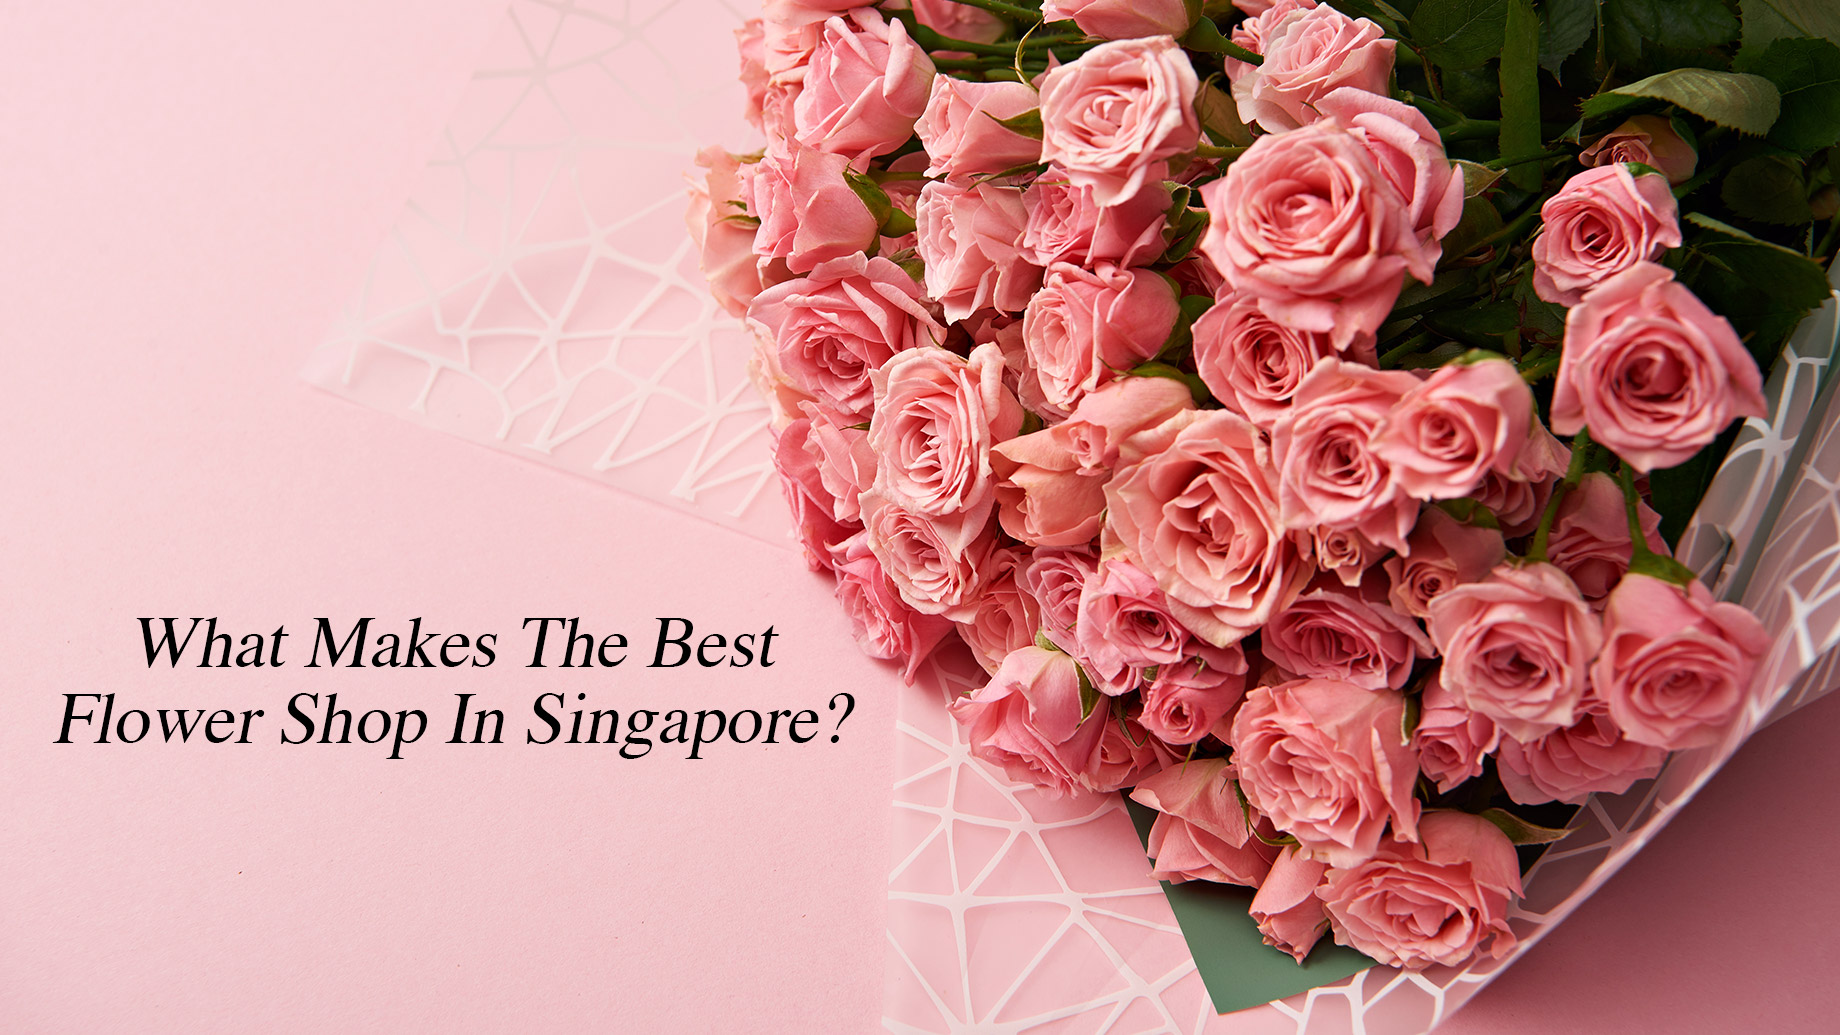 What Makes The Best Flower Shop In Singapore?